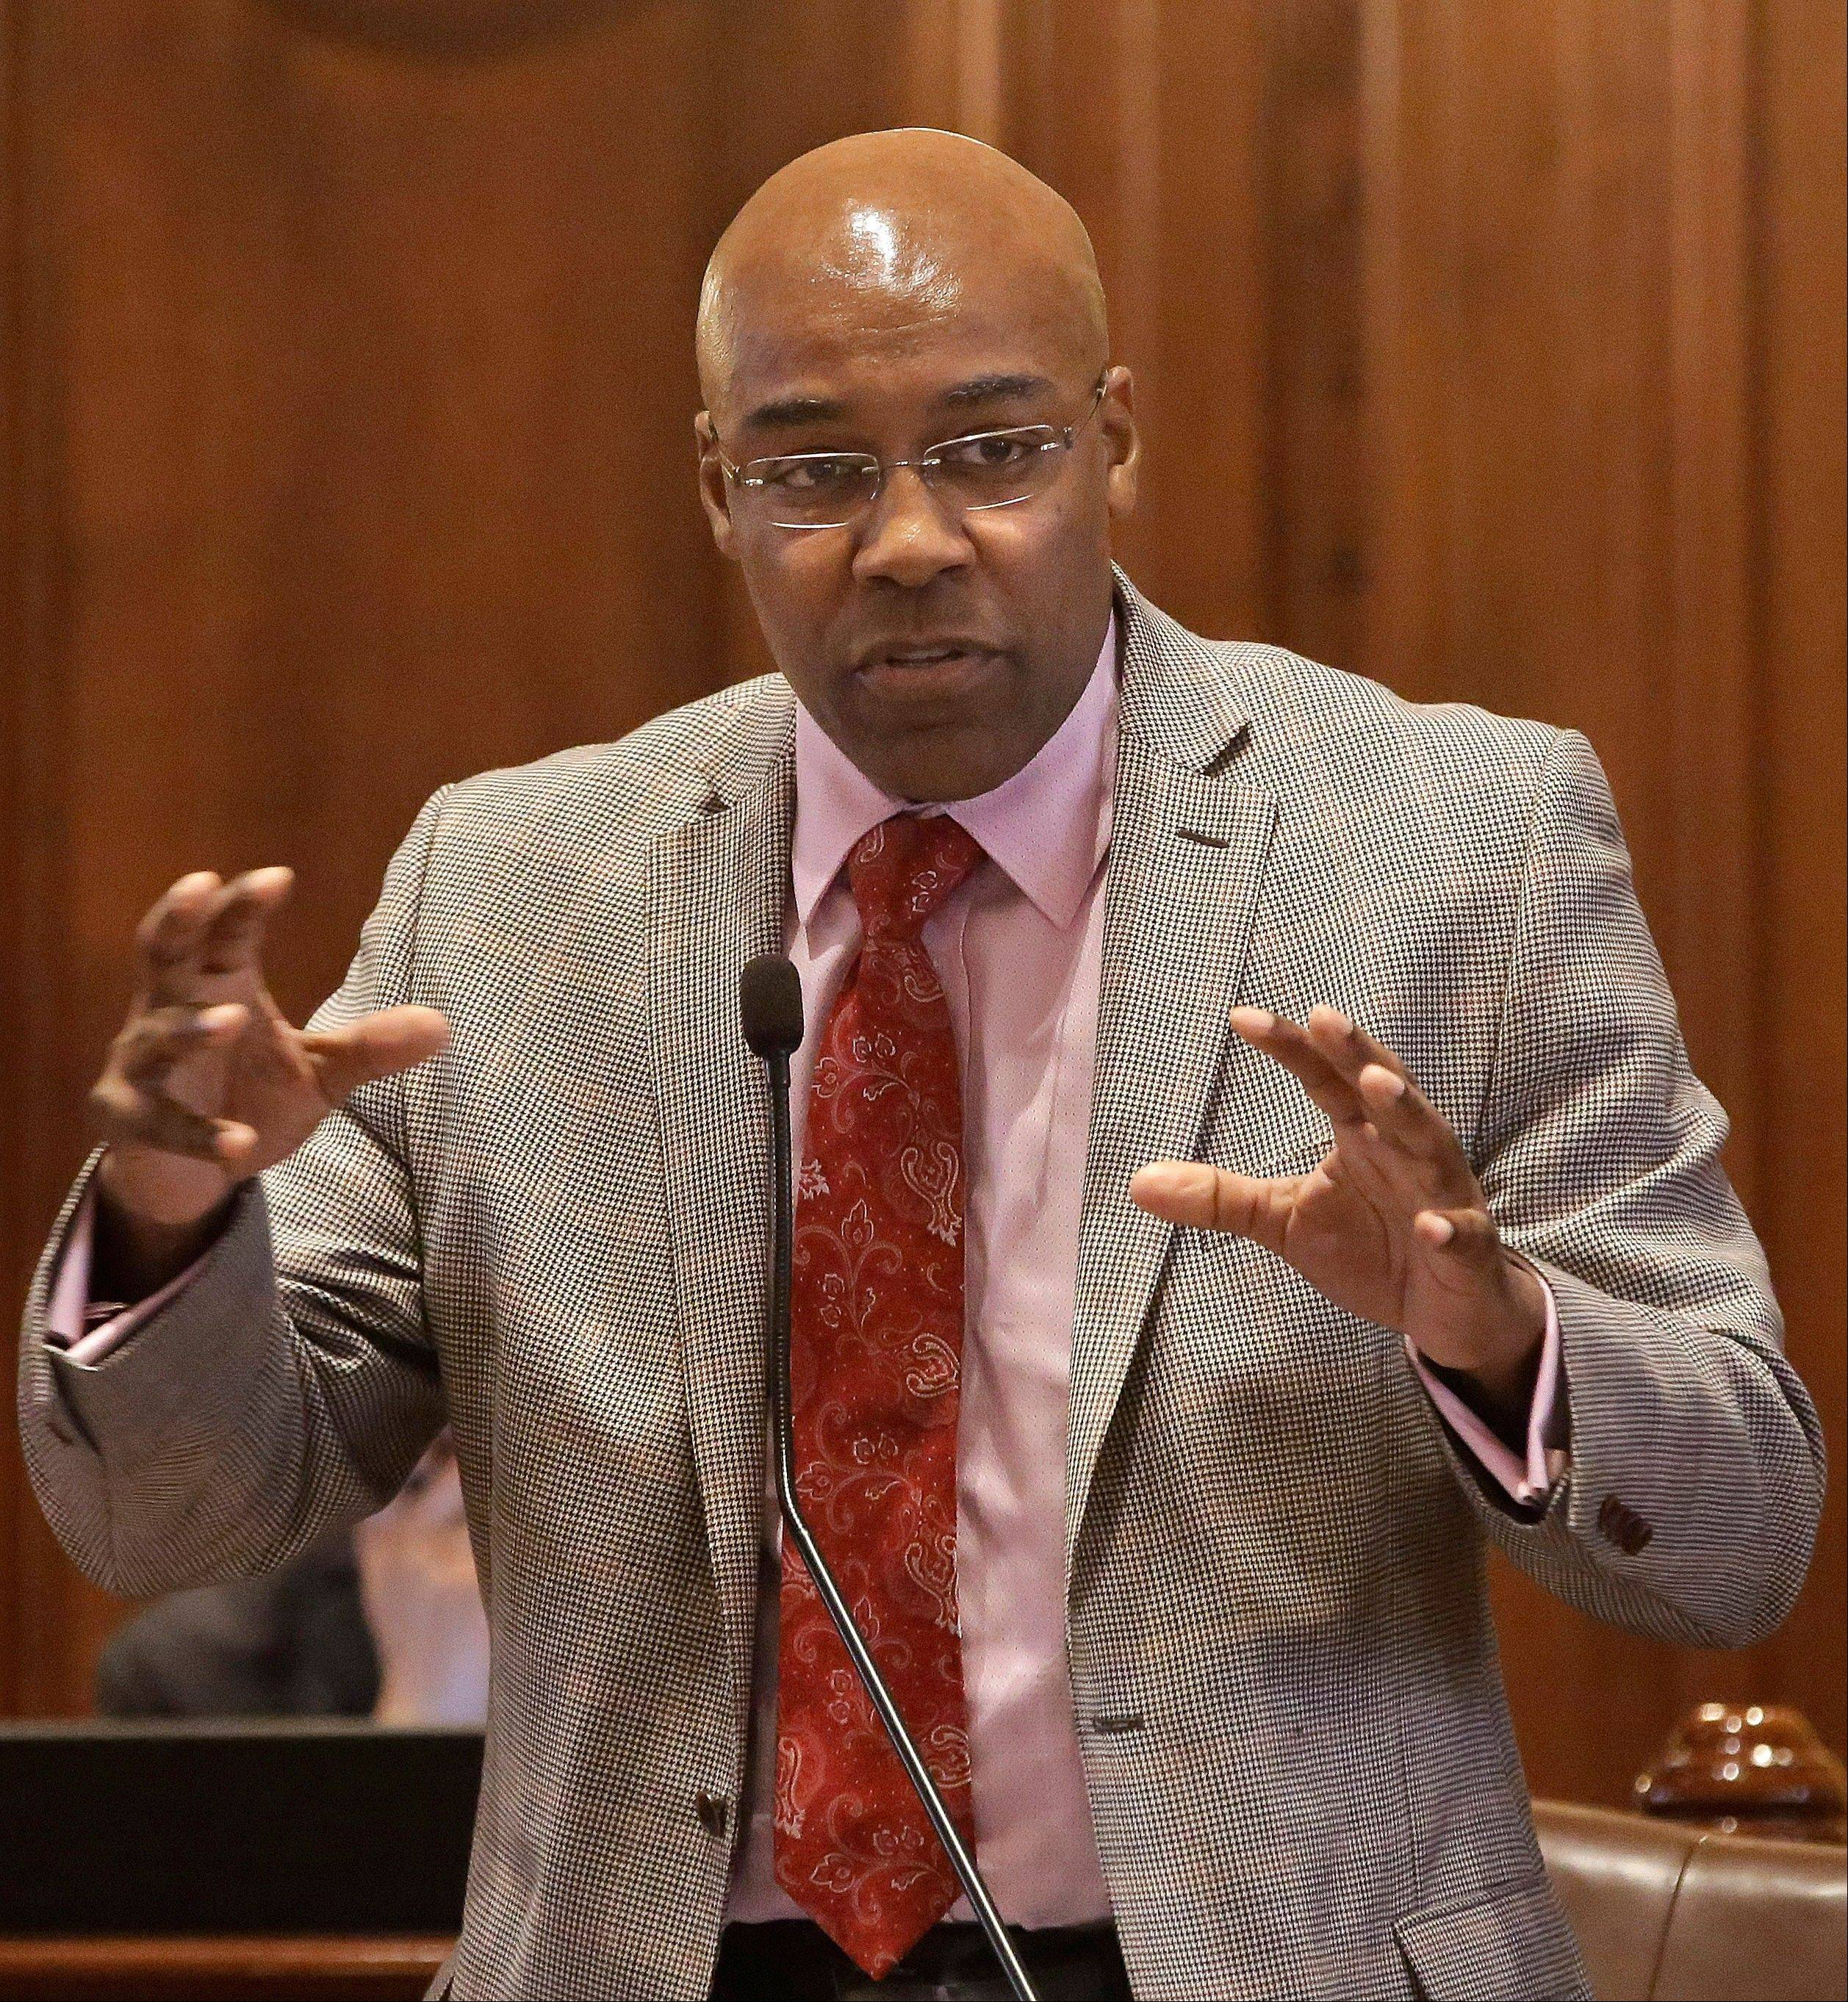 State Sen. Kwame Raoul's concealed carry legislation includes a statewide gun prohibition in schools, liquor stores, stadiums, amusement parks and more. Illinois has until June 9 to follow a federal court order to enact a law allowing concealed guns in public.